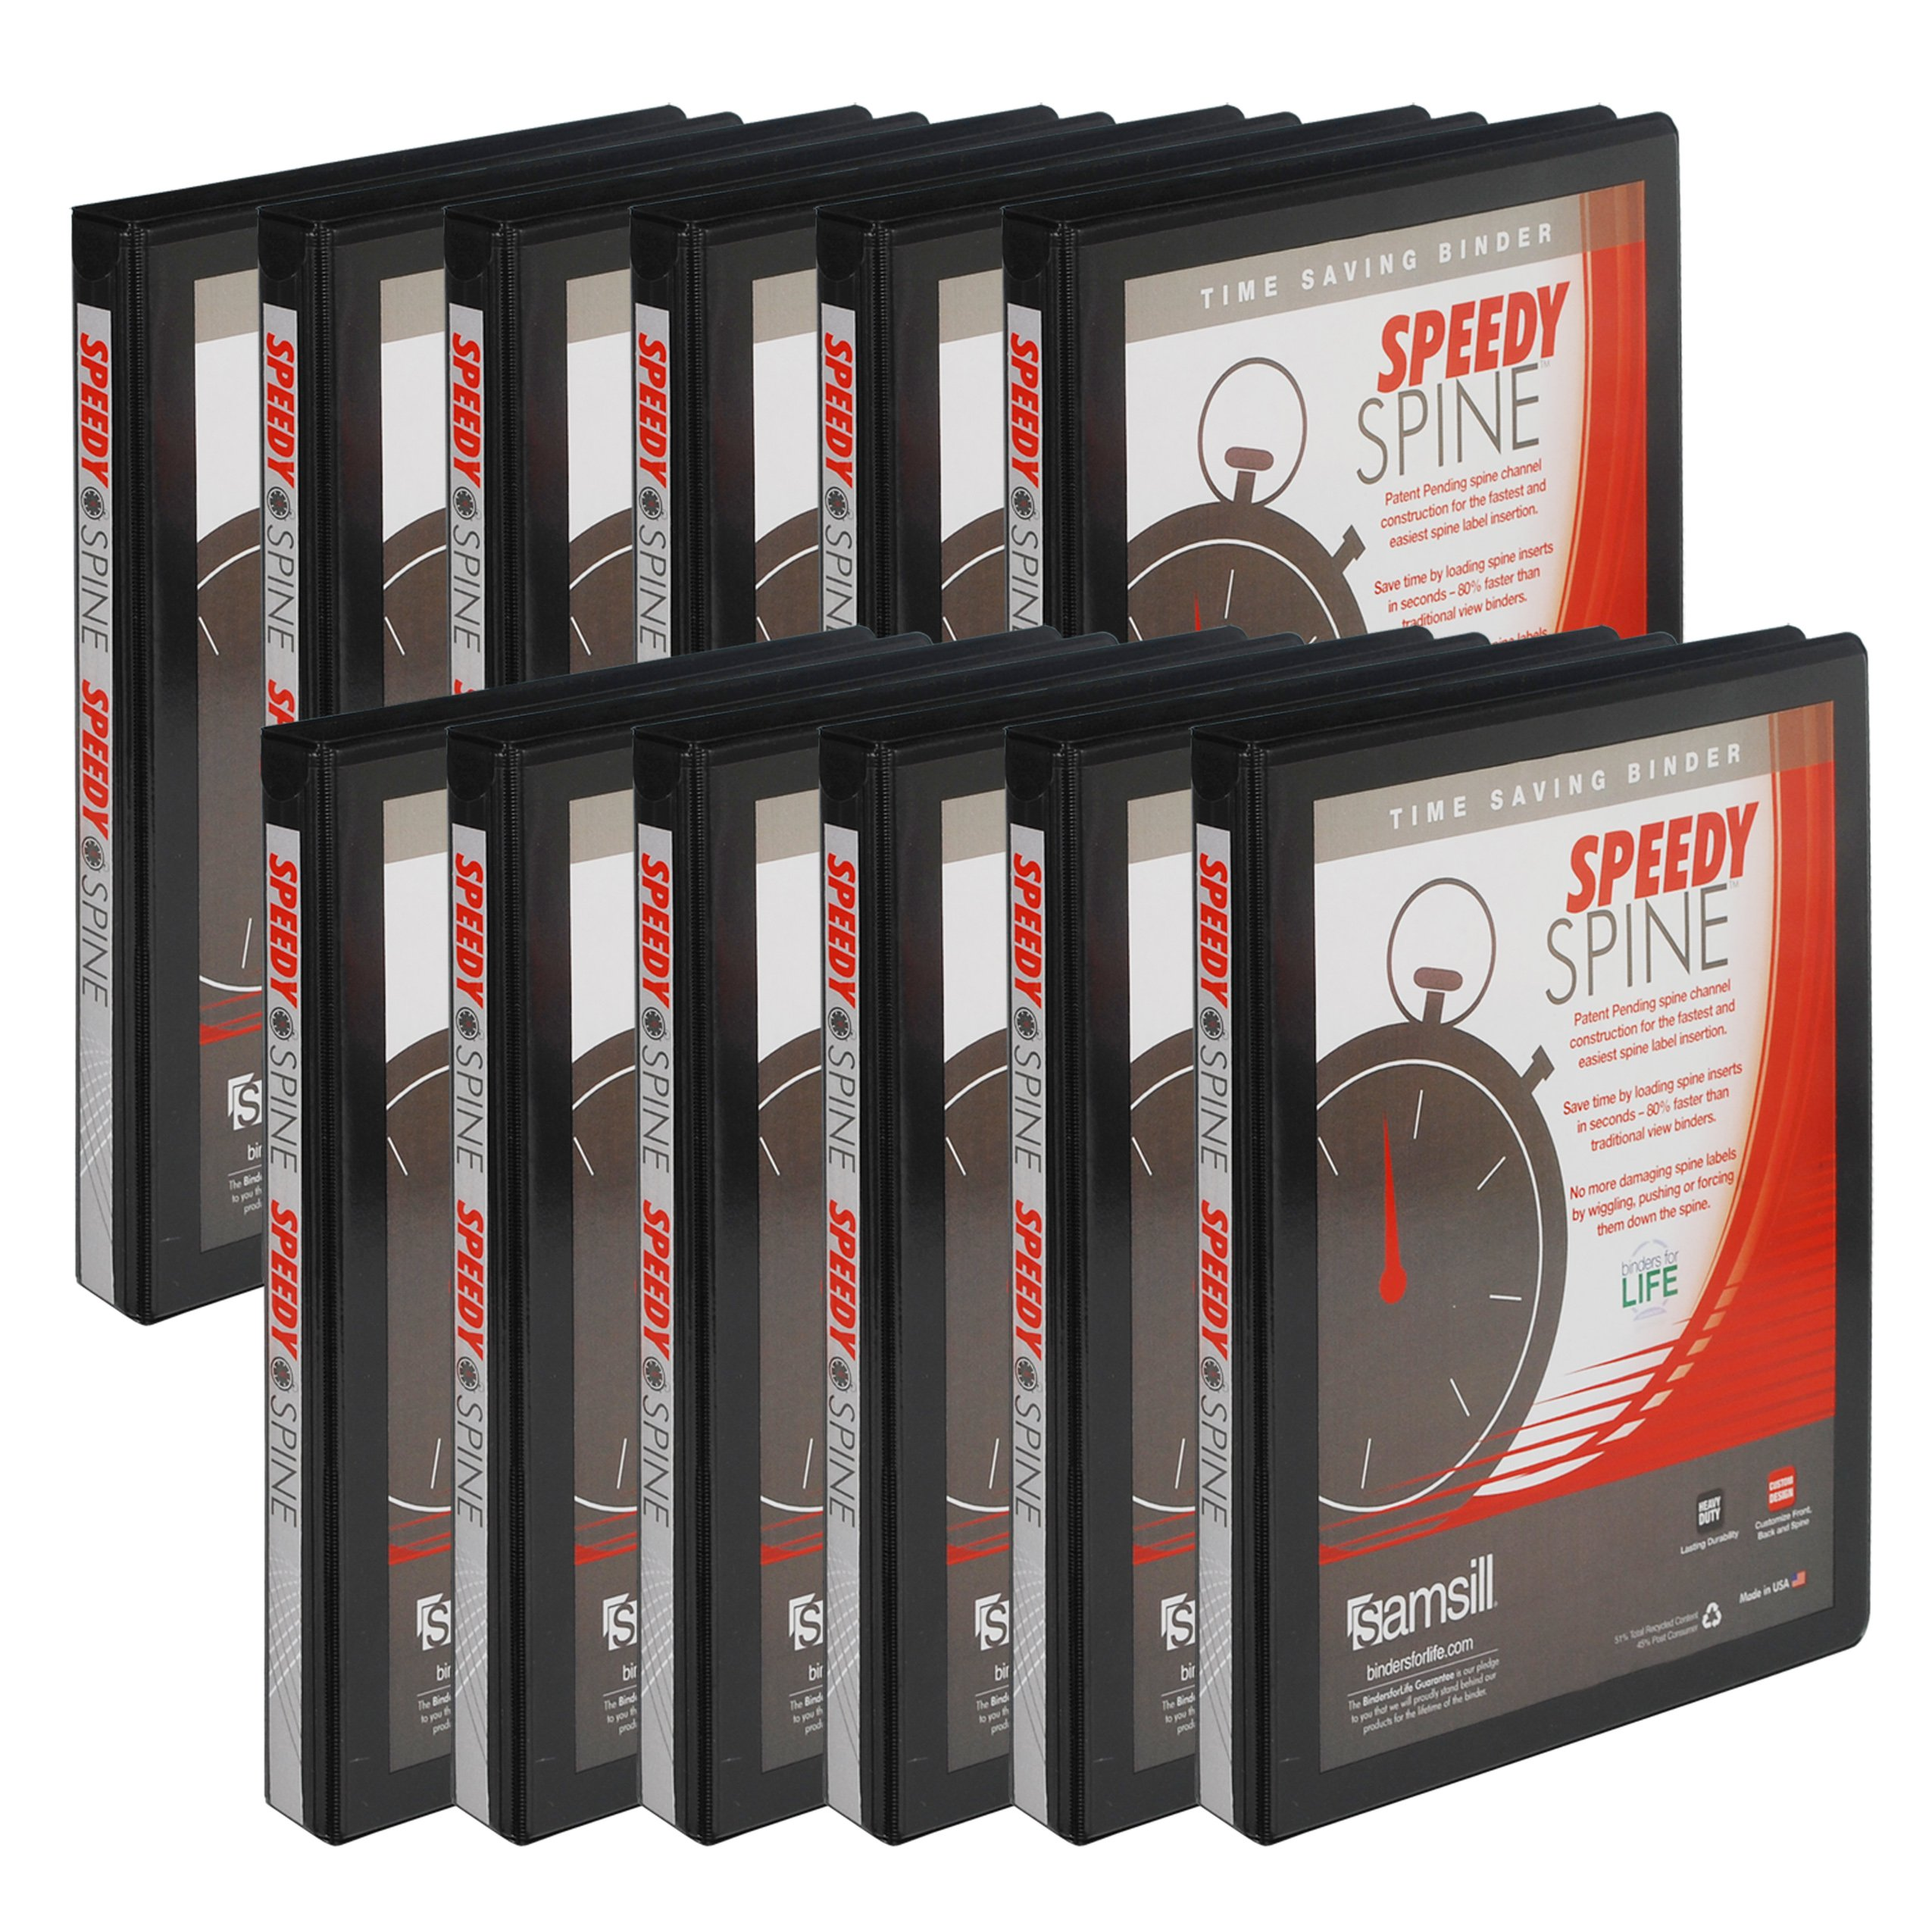 Samsill Speedy Spine Time Saving / Easy Spine Label Inserting 3 Ring View Binder, .5 Inch Round Ring, Customizable Clear View Cover, Black, Bulk Binders - 12 Pack